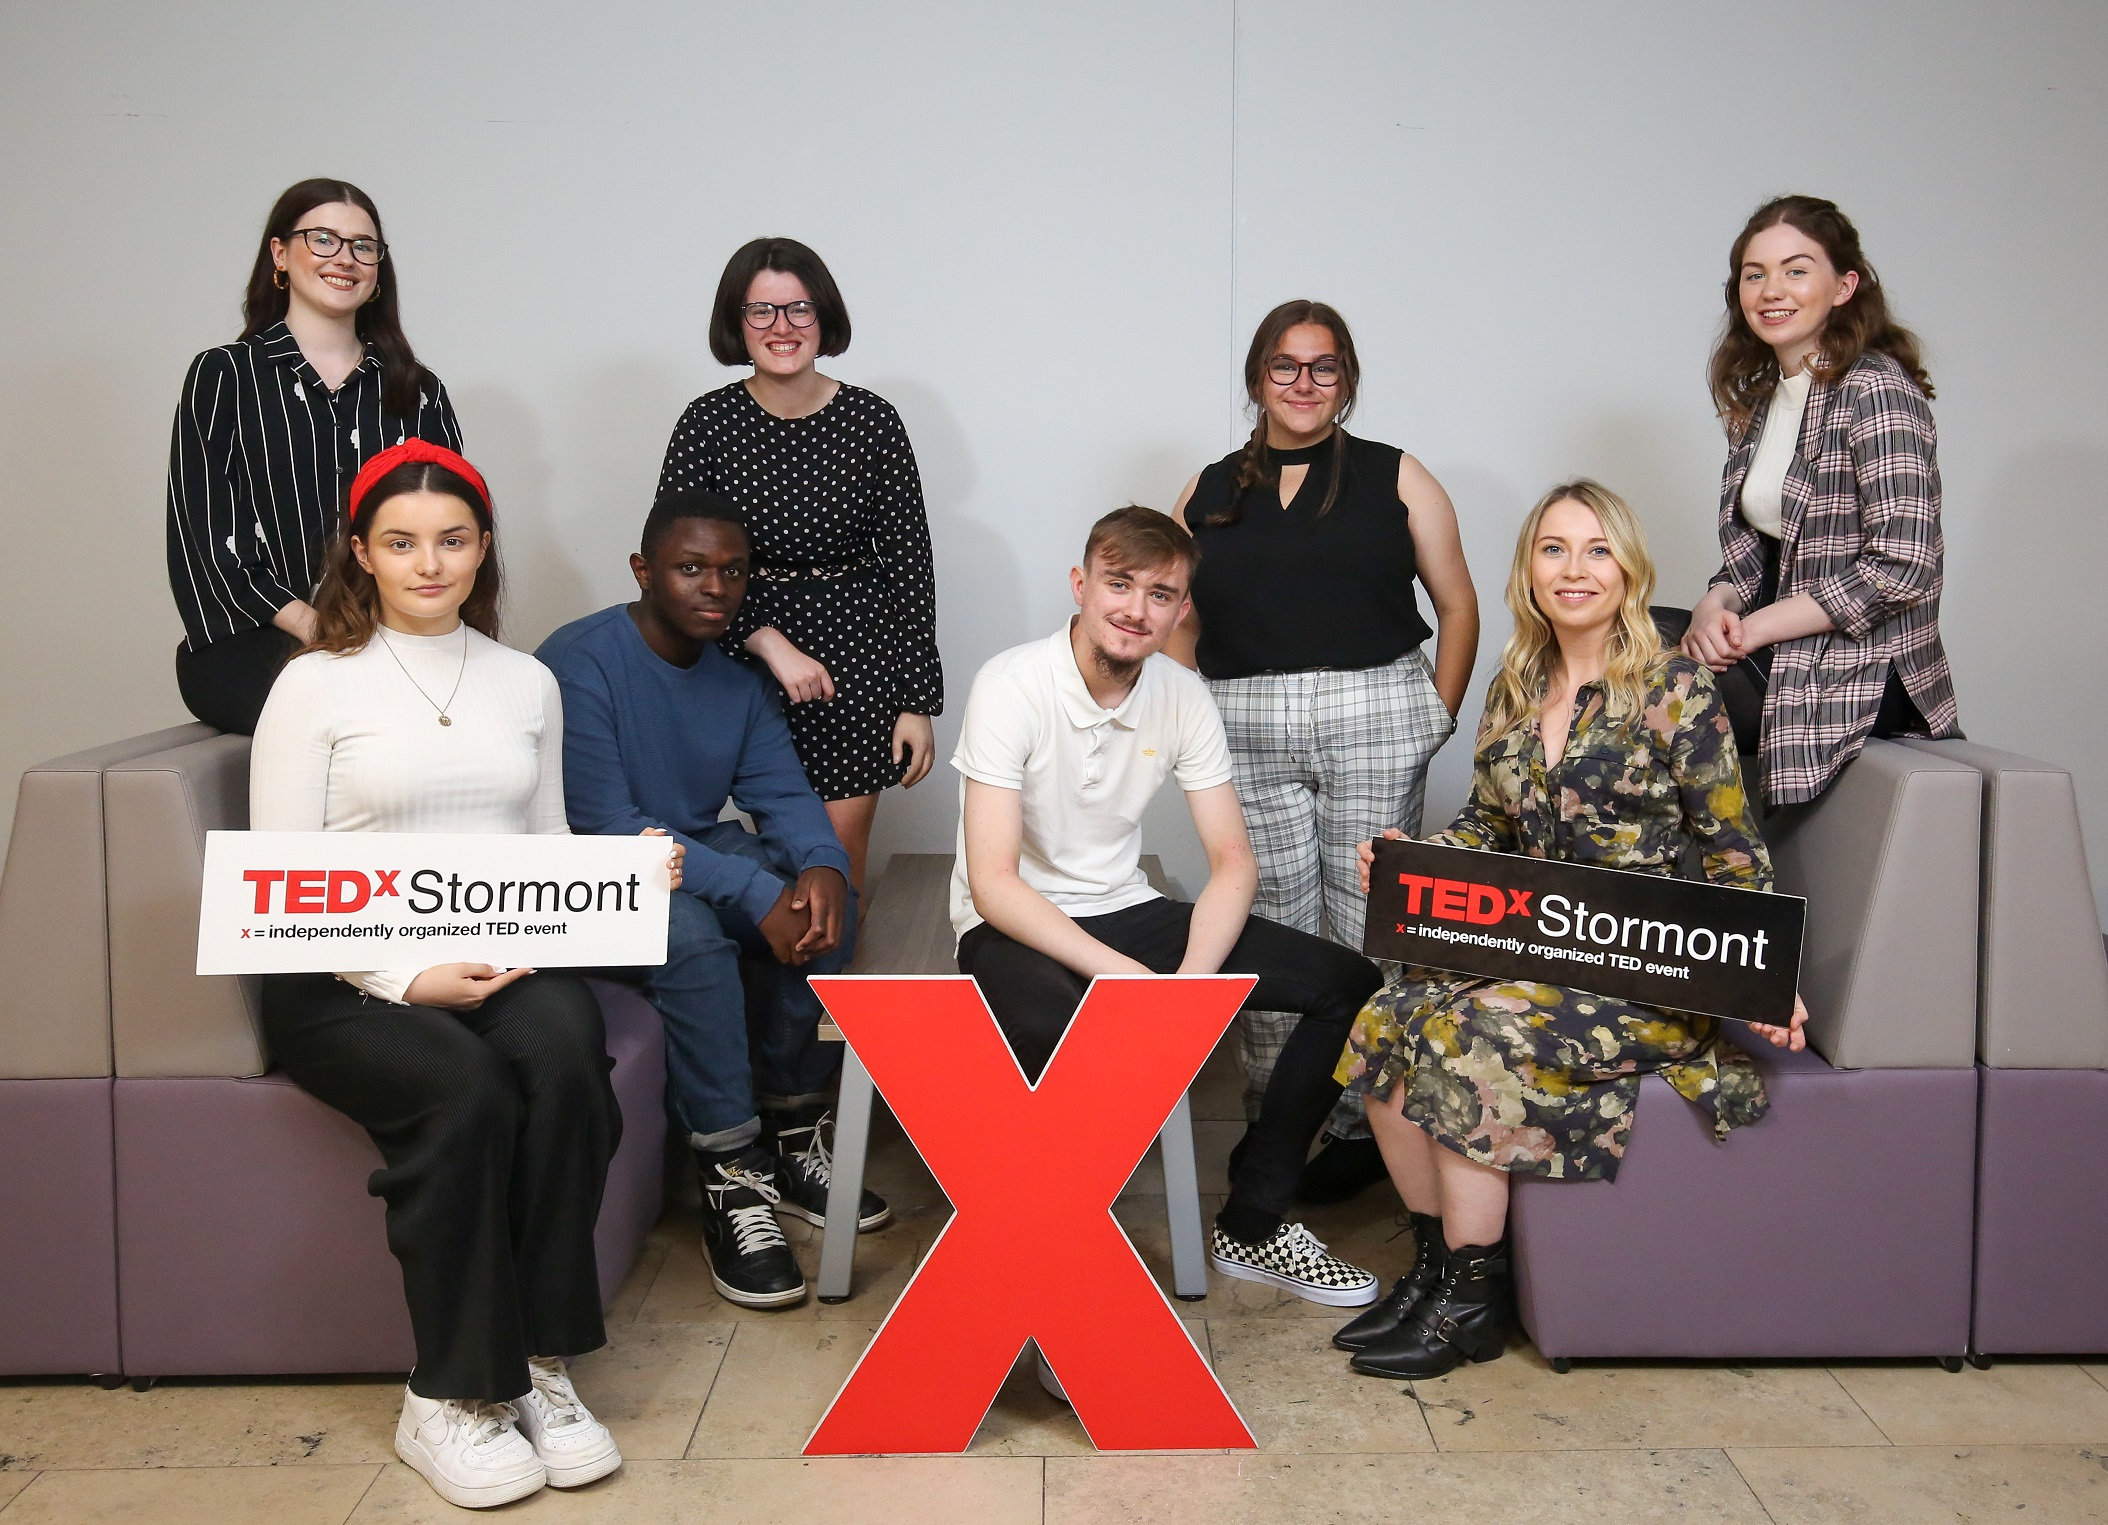 'Talk like TED' participants Rebecca Toolan, Tegan Nesbitt, Nathan Ignacio Alexio, Amy Doherty, Jack Ellison, Beth Vance, Maria McStravick and Catriona Walsh